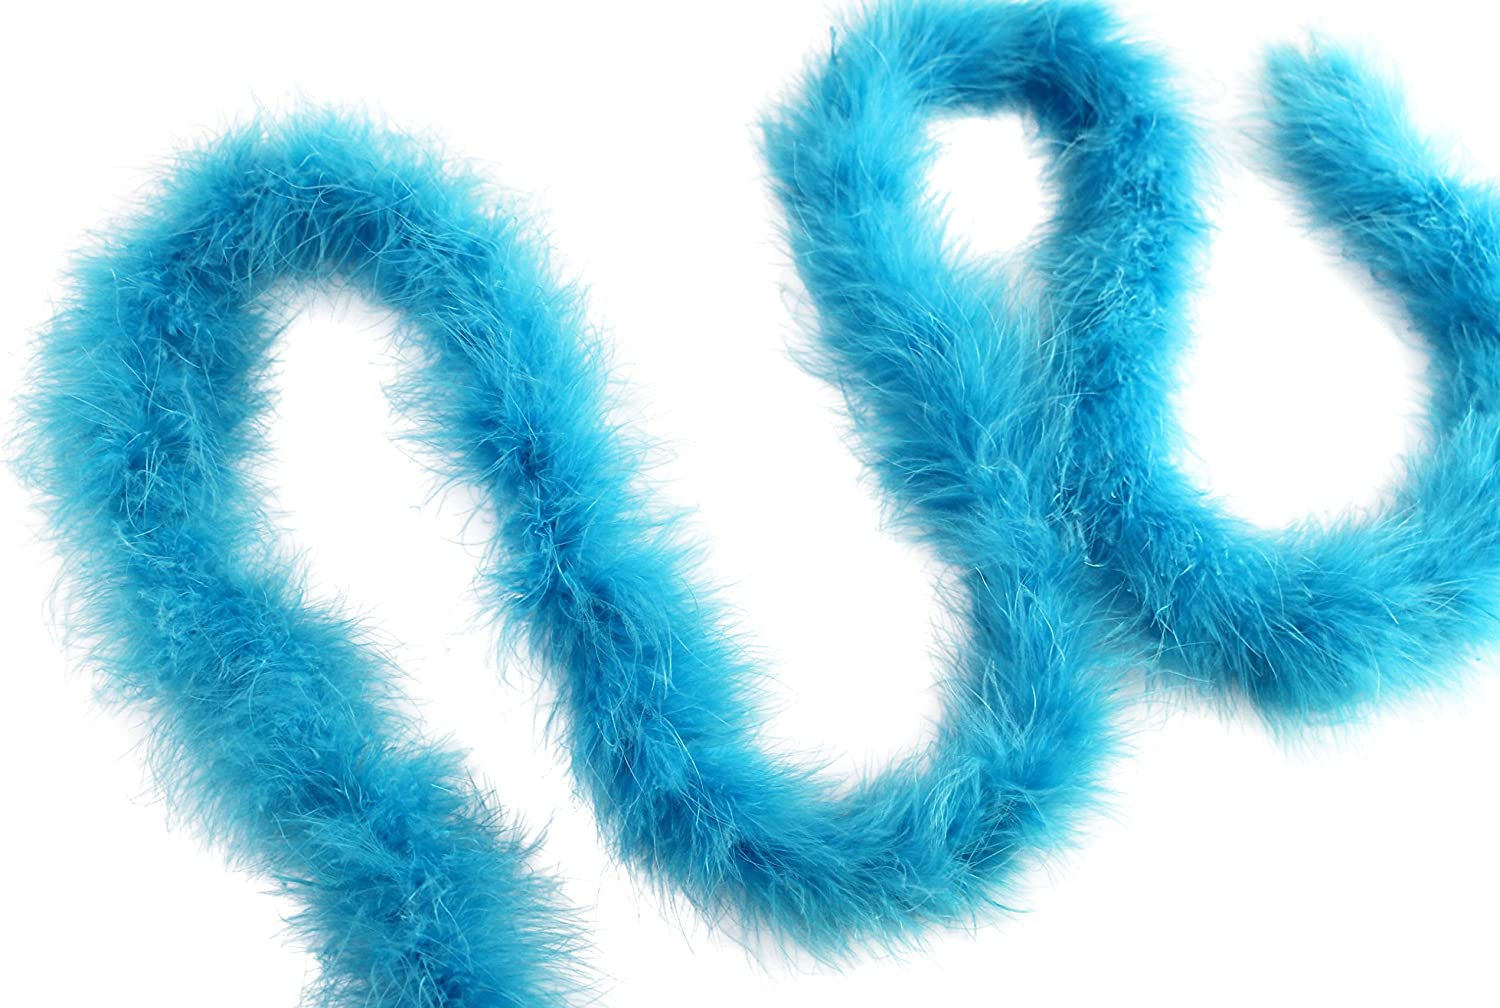 Dancing Wedding Crafting Party Dress Up Halloween Costume Decoration 14 Gram 2 Yard-Long Marabou Feather Boa Baby Pink